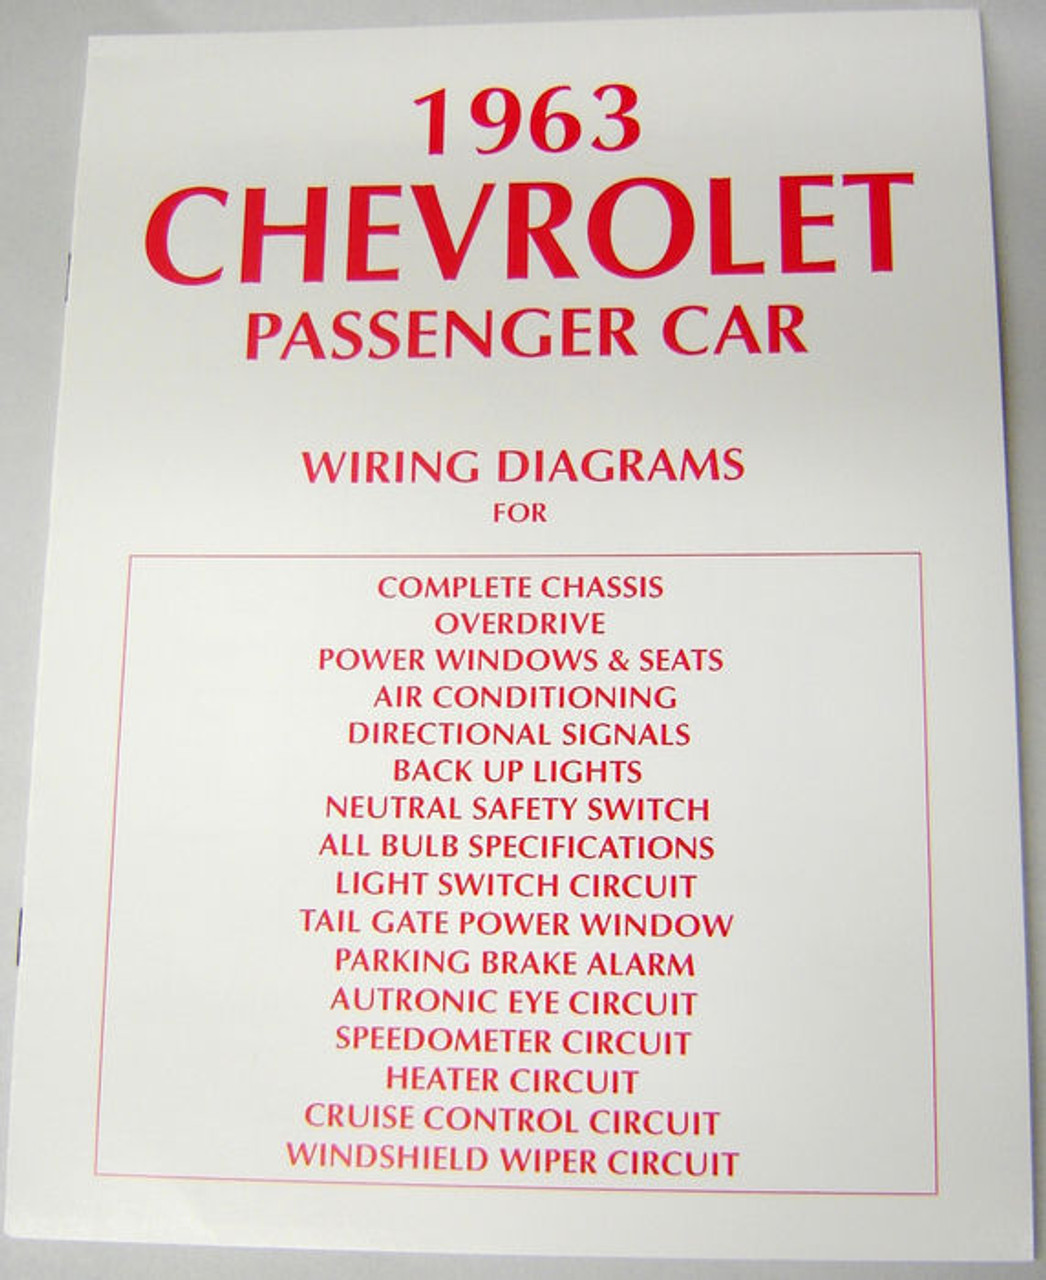 63 Chevy Impala Electrical Wiring Diagram Manual 1963 on